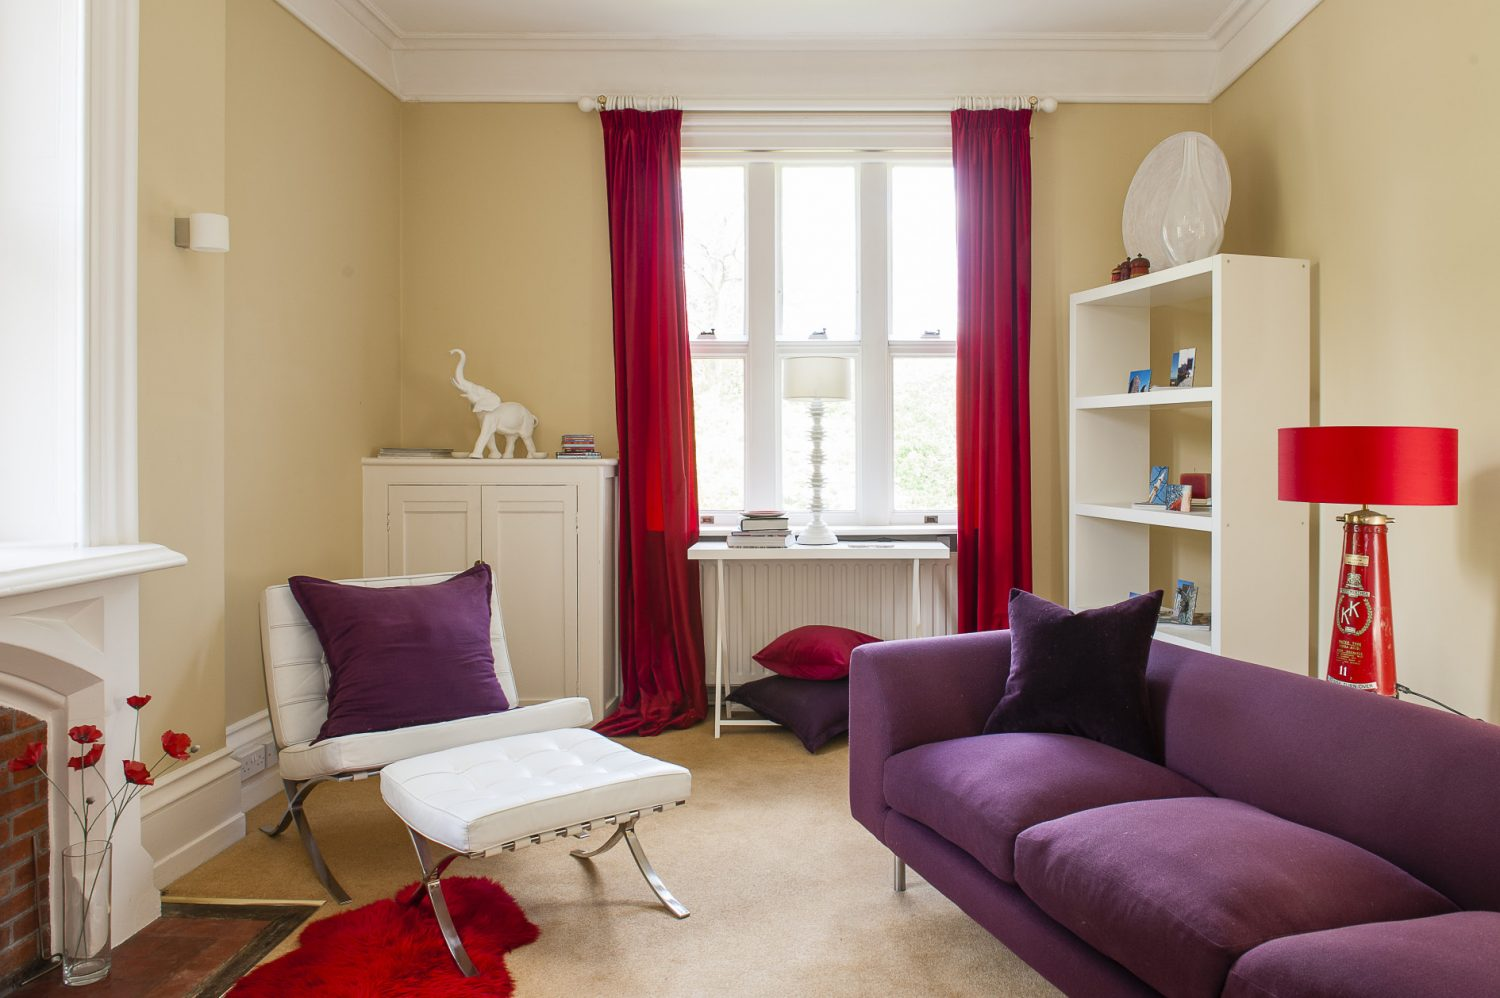 The TV room has a light mid-century touch. A comfortable purple sofa and red rug, curtains and a wonderful side lamp Chris has made from an antique fire extinguisher complete the period picture